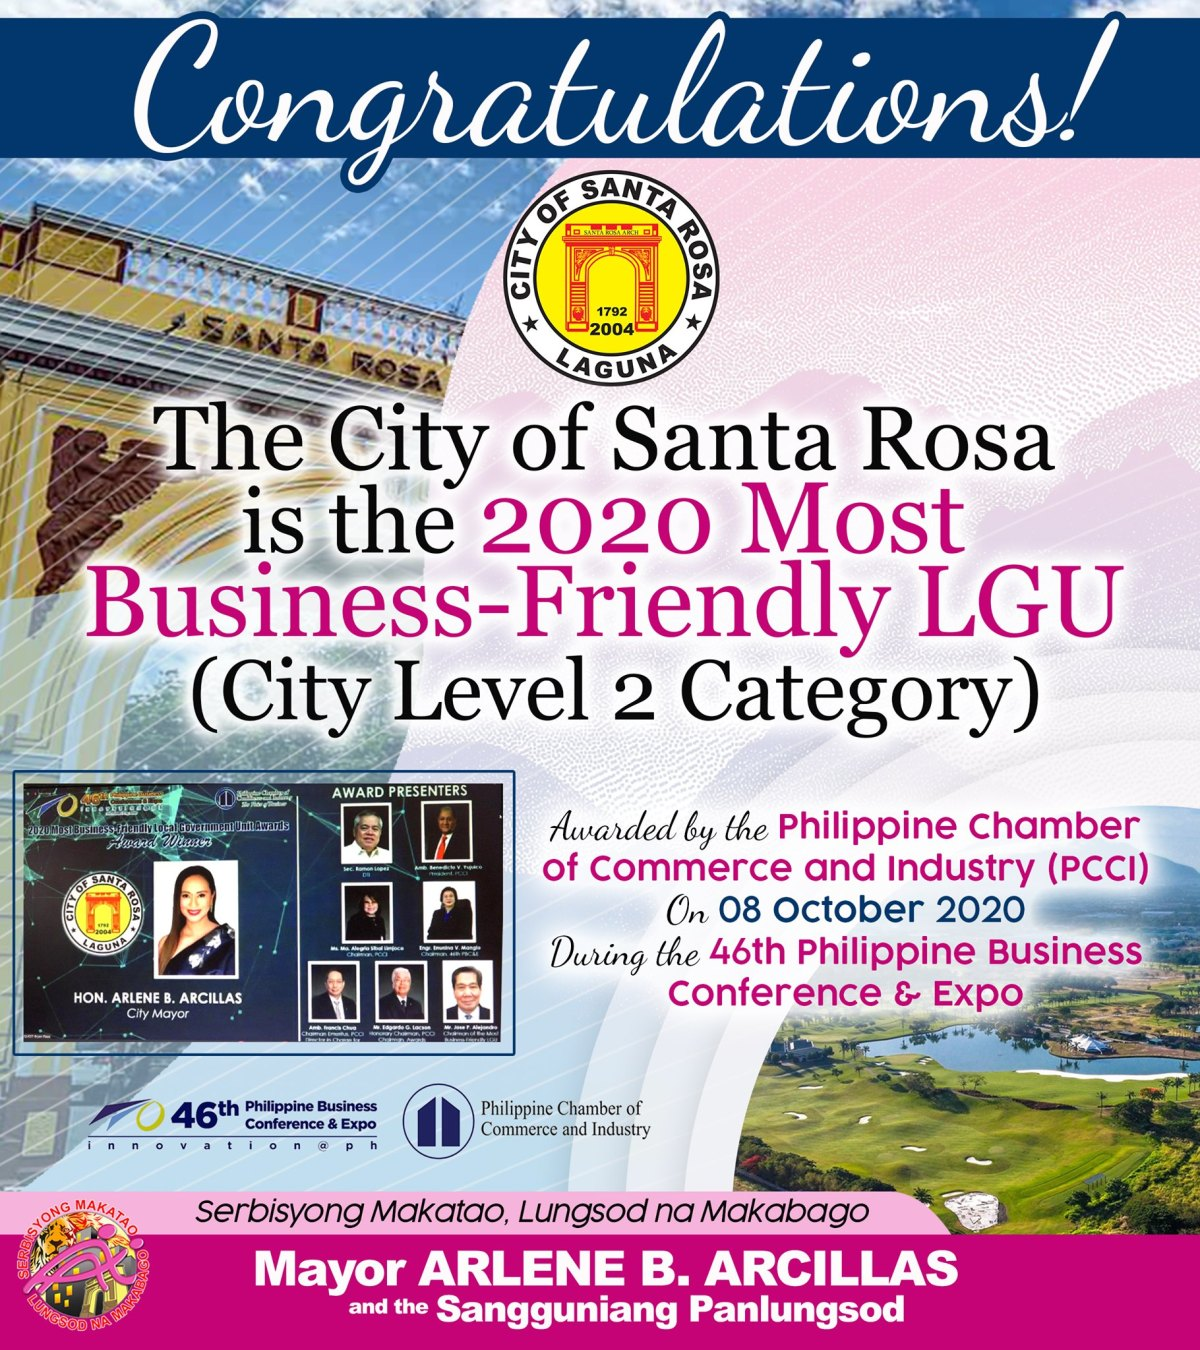 2020 Most Business-Friendly Local Government Unit (LGU) and COVID 19: City of Santa Rosa,Philippines